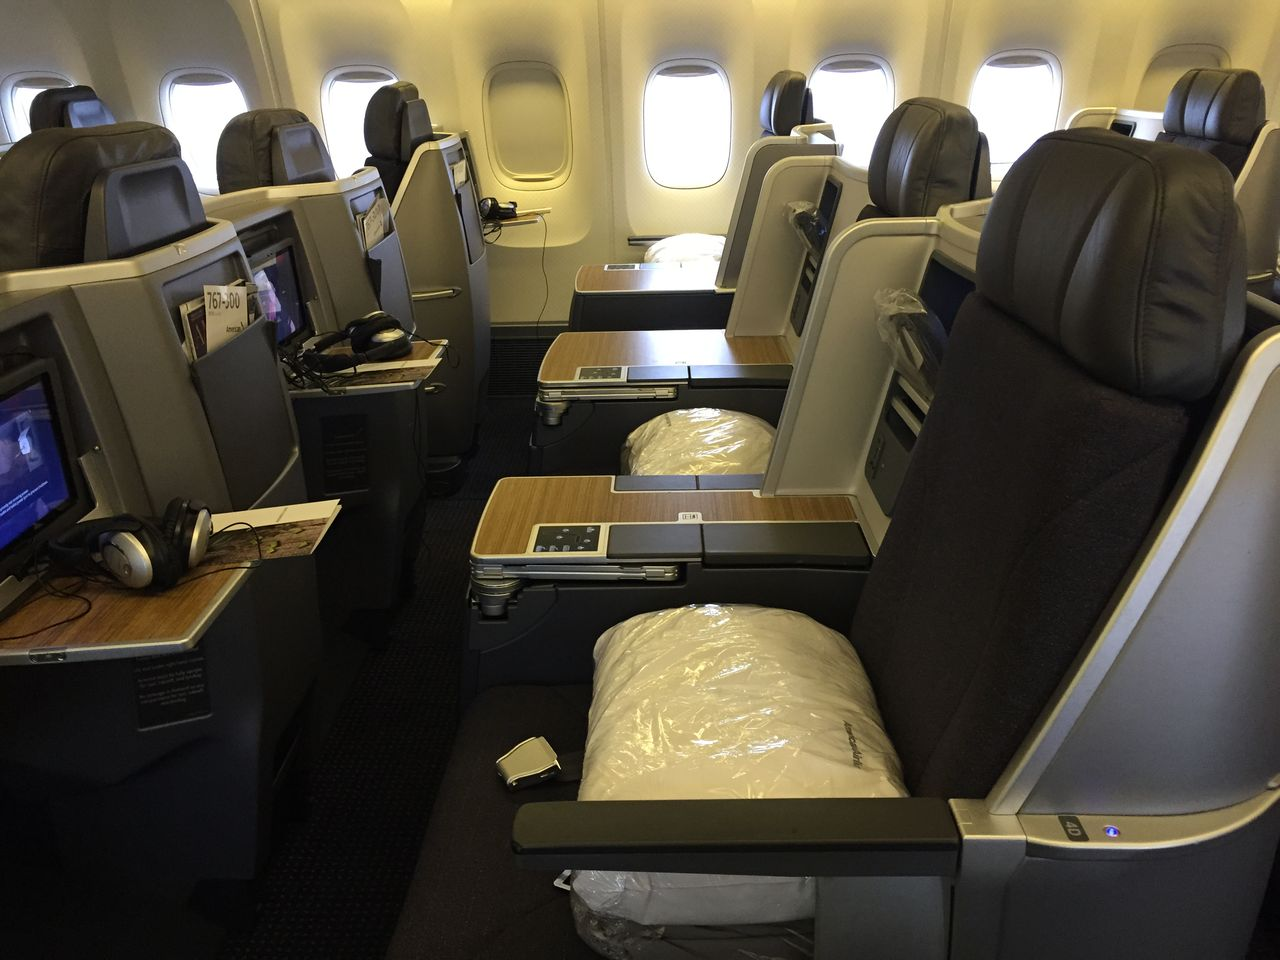 Review Of American Airlines Flight From Milan To Miami In